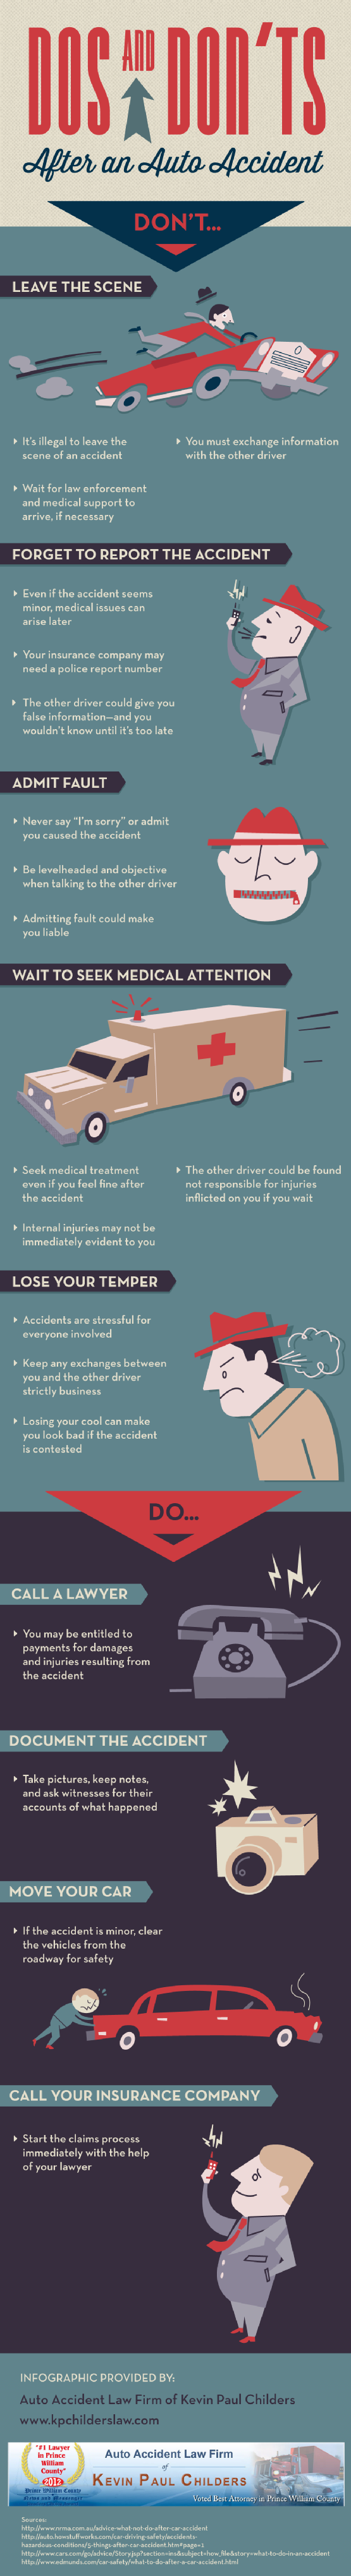 Dos And Don Ts After An Auto Accident Infographic Car Accident Car Facts Car Insurance Tips